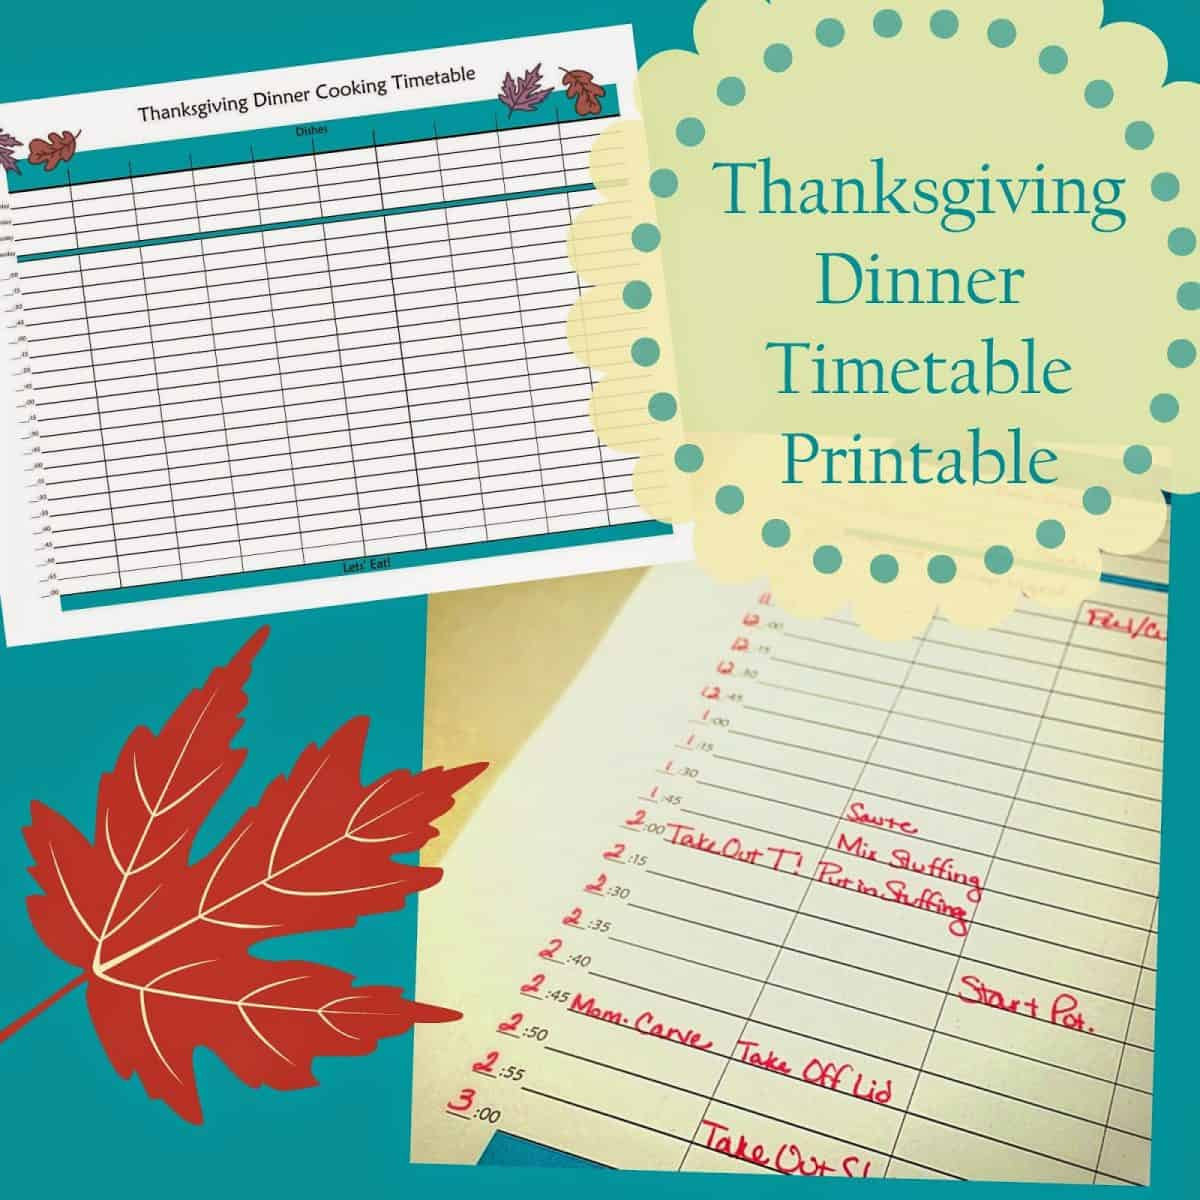 Thanksgiving Day Timetable Printable